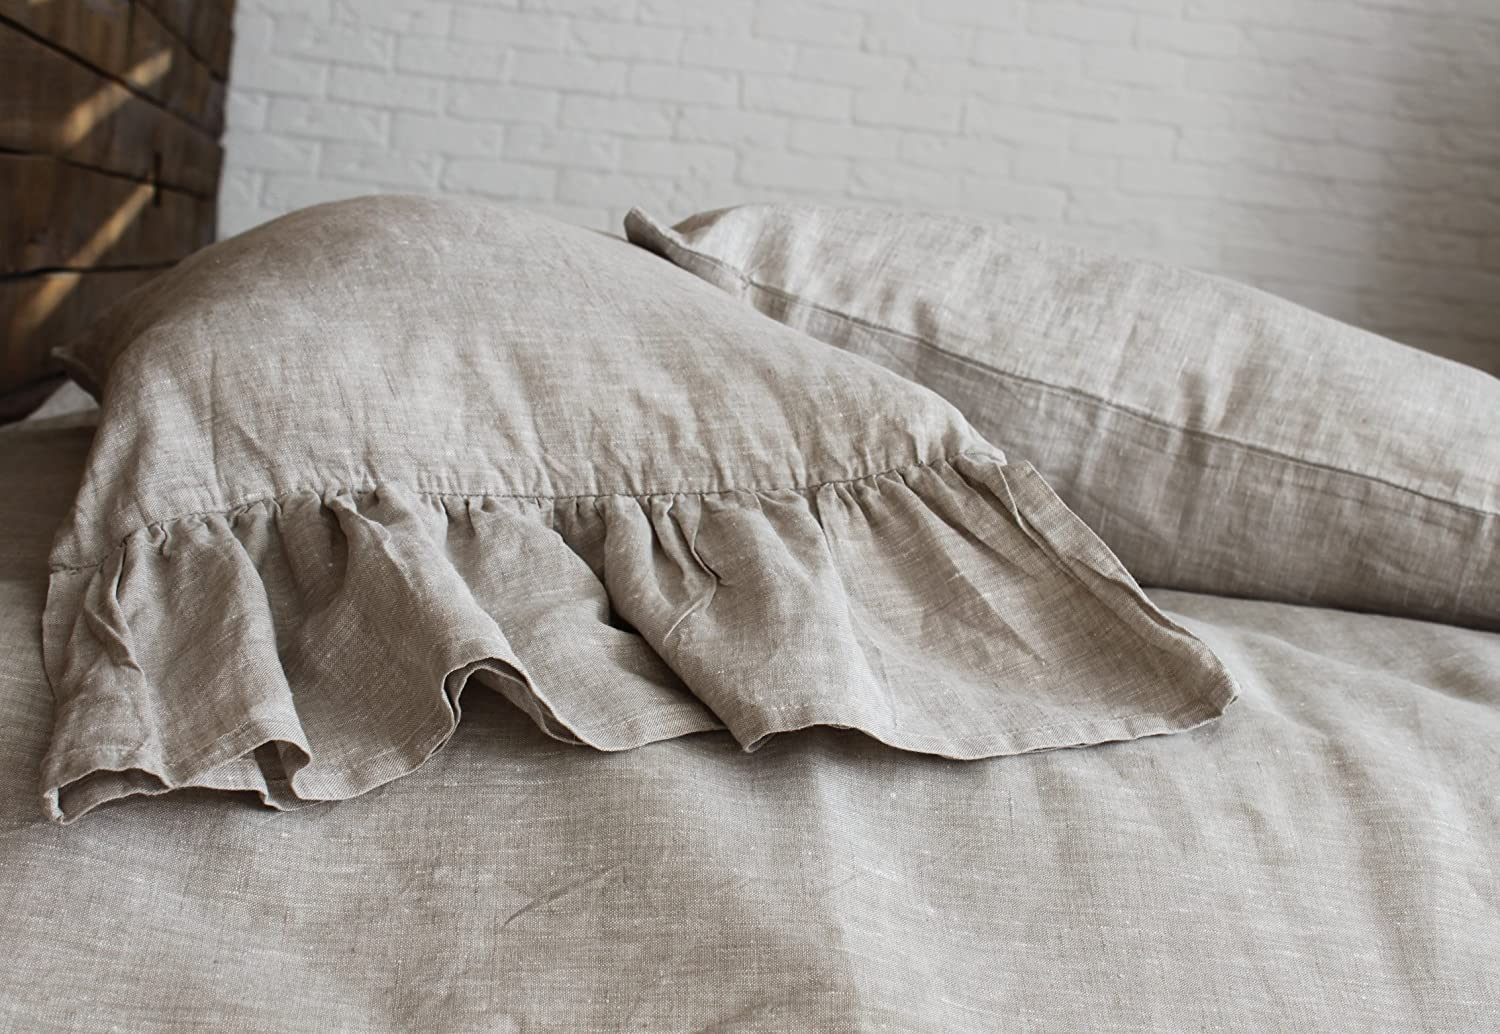 Pure Linen Pillow Sham With Mermaid Long Ruffles - Standard, Queen, King, Euro Sizes - Natural, White or Grey Colors